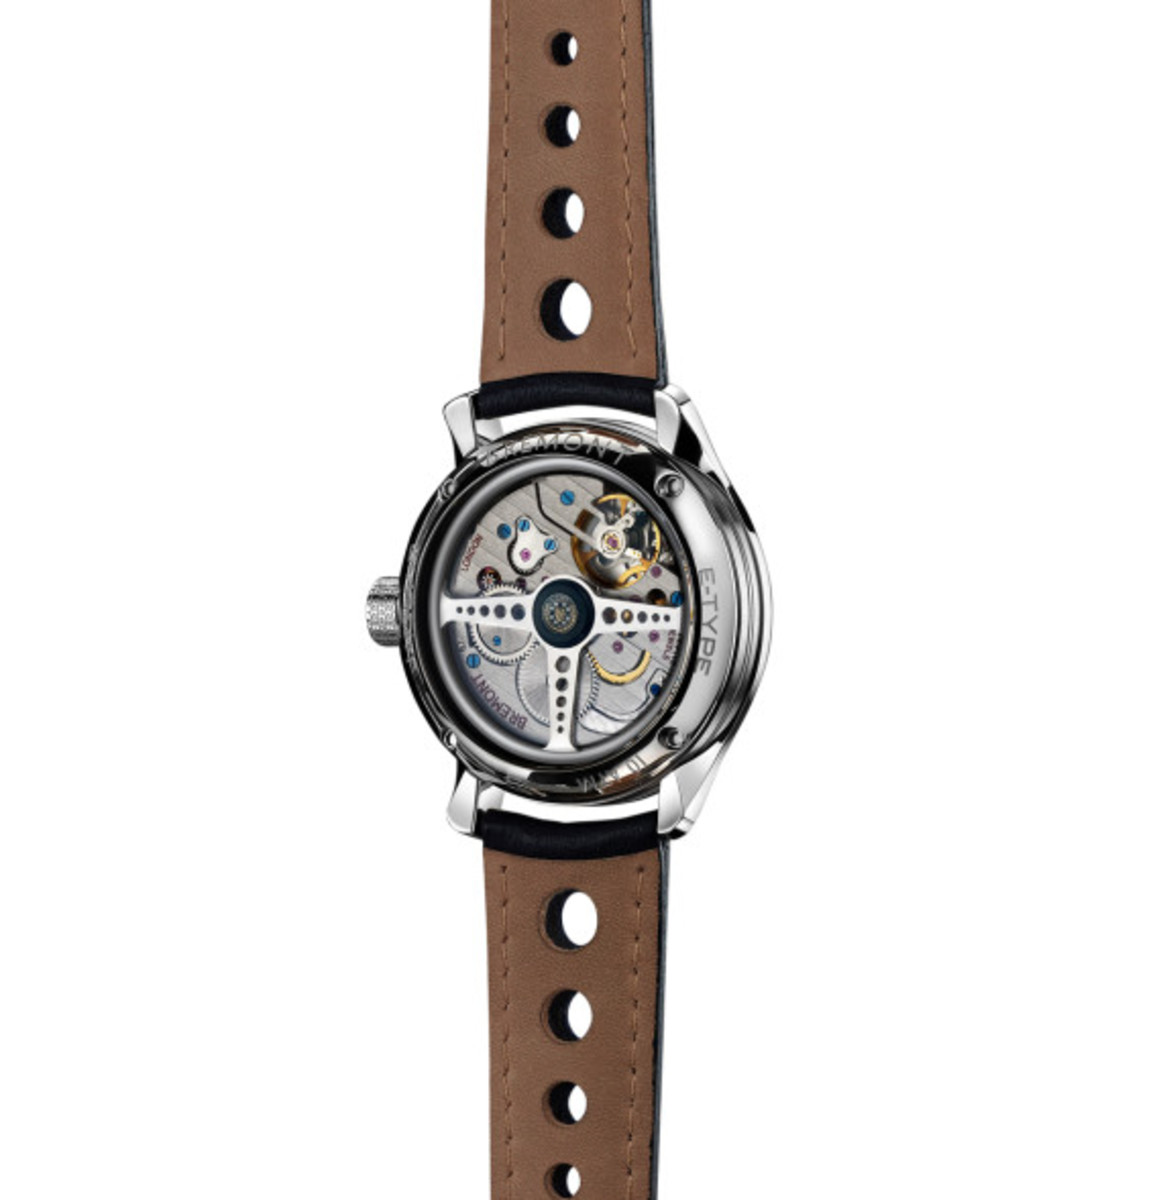 jaguar-bremont-mki-and-mkii-watches-03